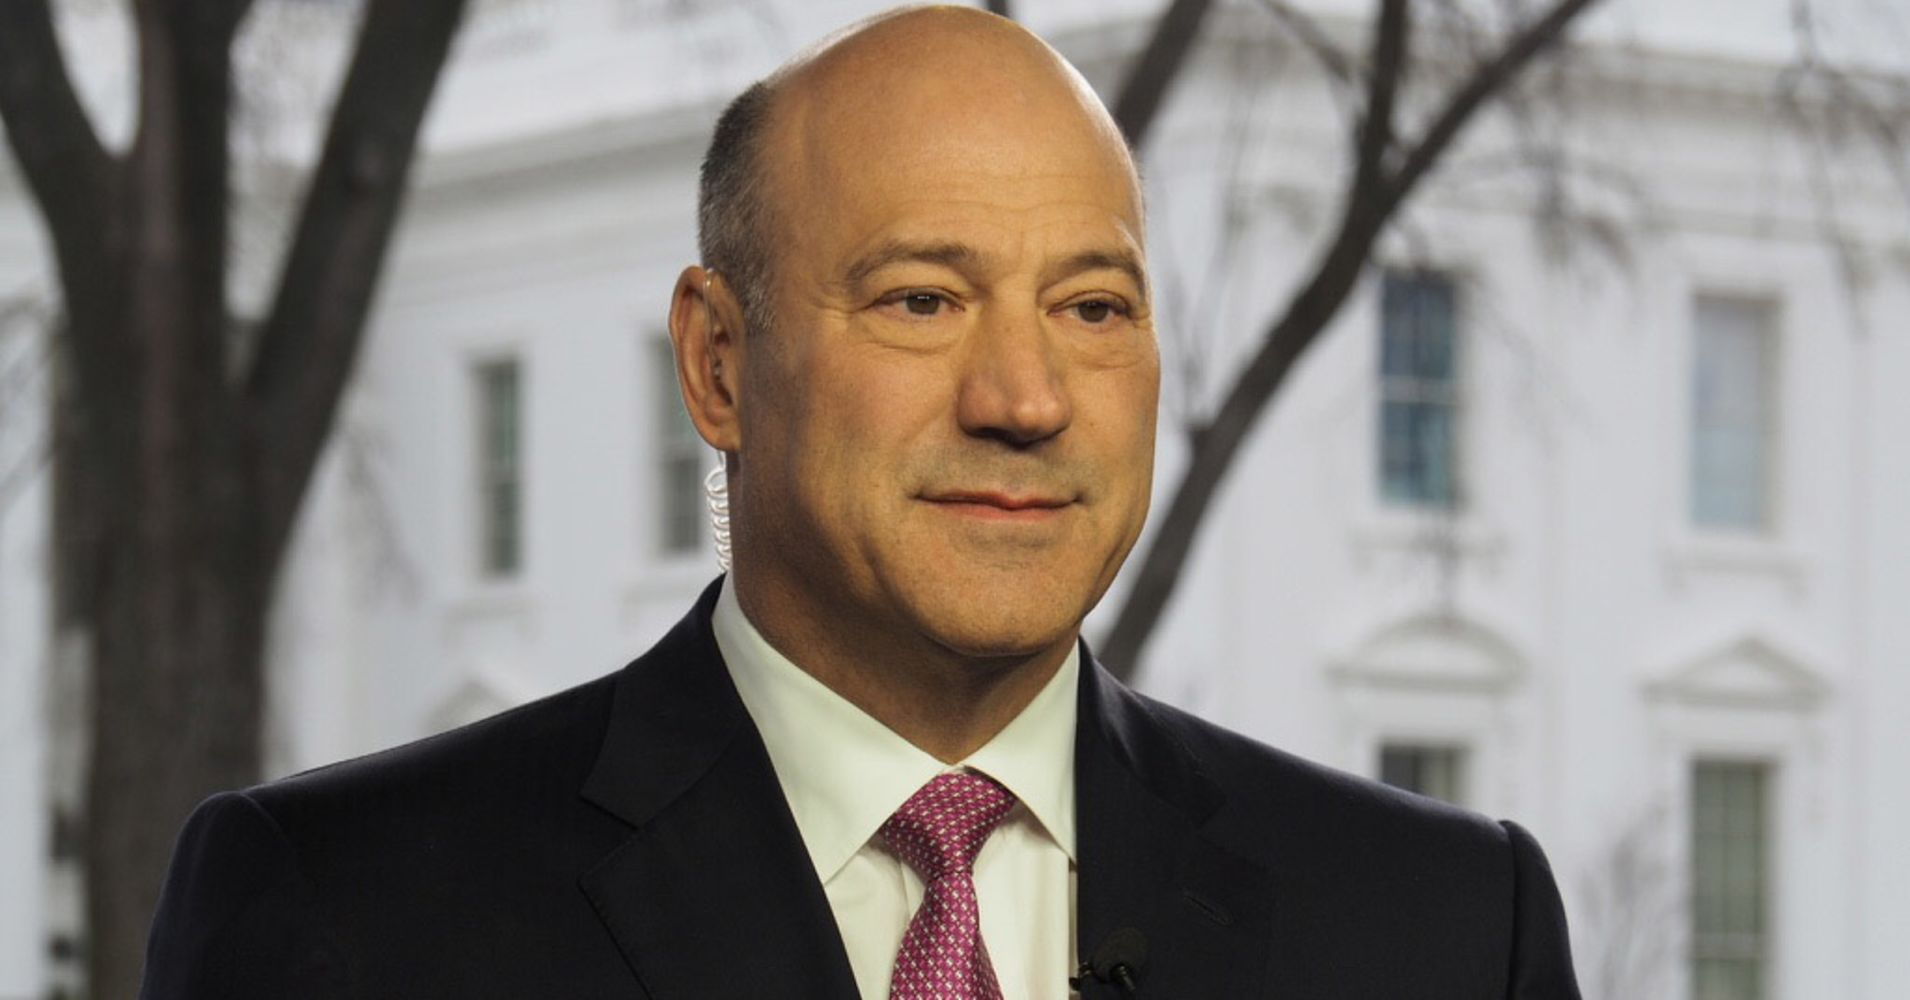 Gary Cohn: President Trump shouldn't comment on independent agencies like the Fed